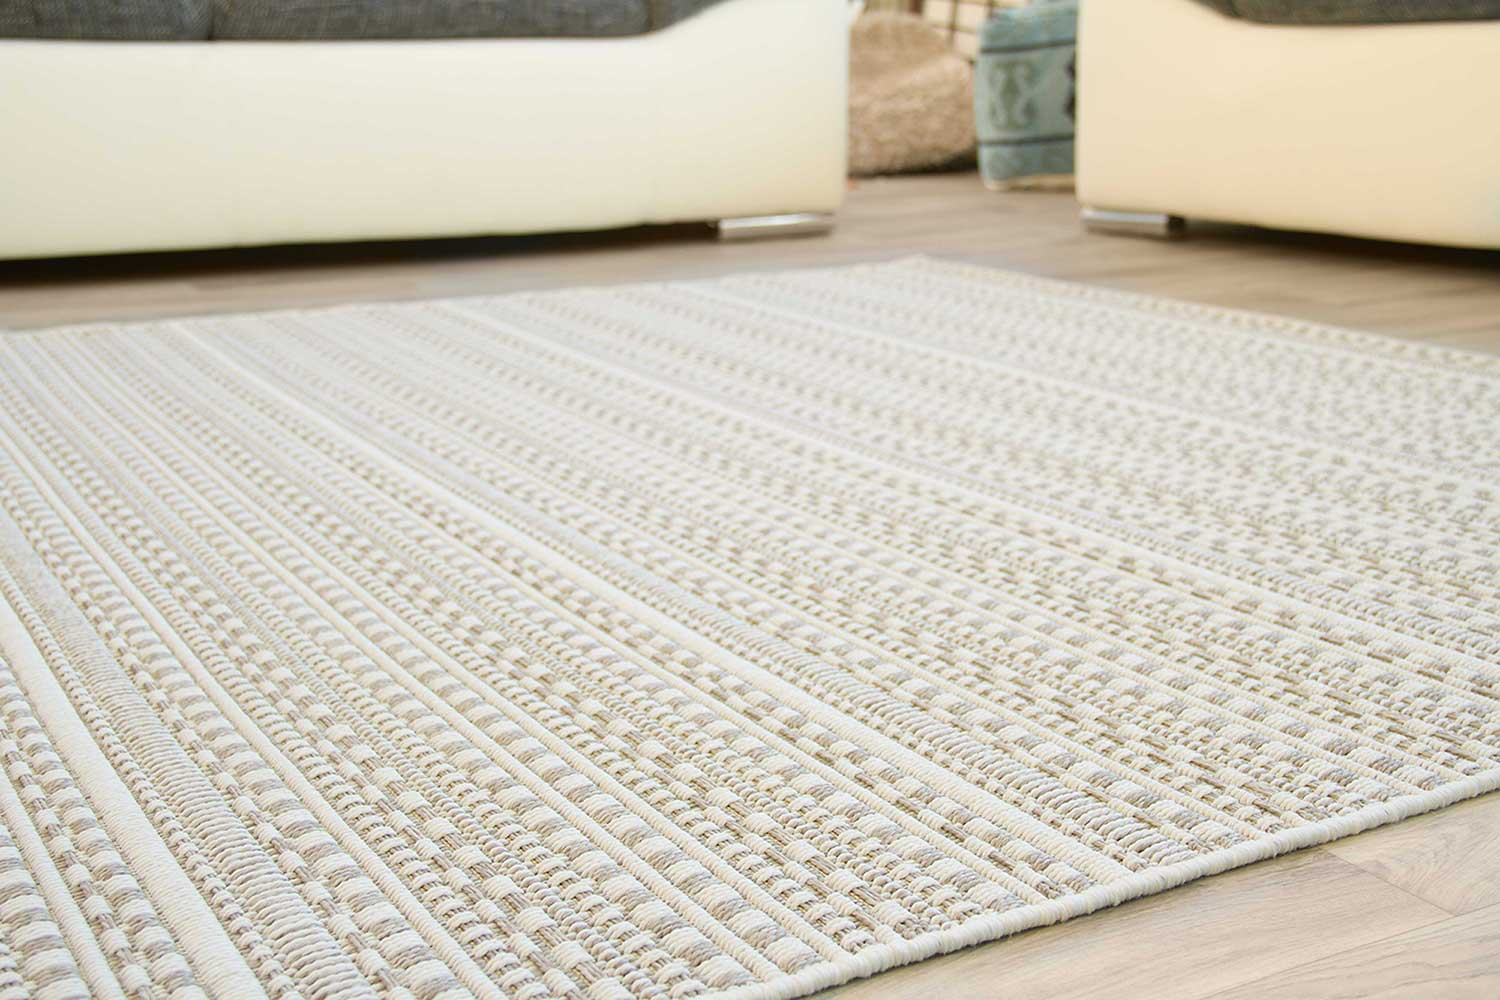 Teppich Sisal Muster In Und Outdoor Teppich Lappland Design Muster Global